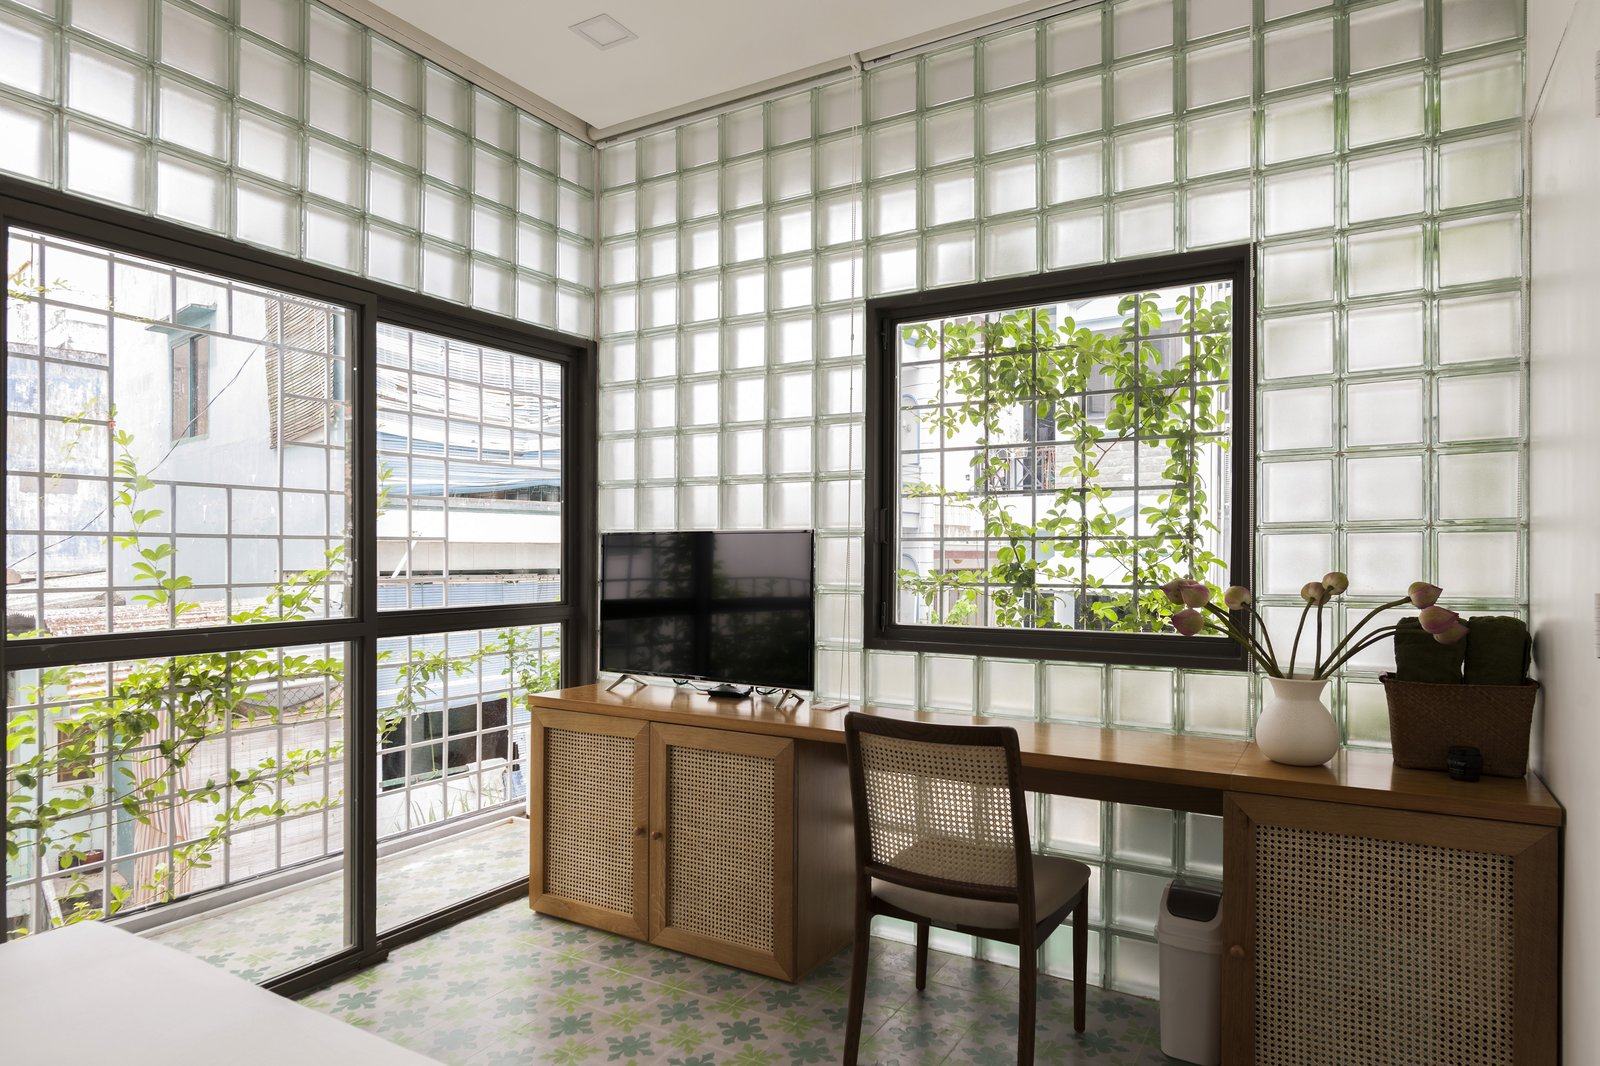 Bedroom, Recessed Lighting, Chair, Ceramic Tile Floor, and Porcelain Tile Floor A sliding glass door opens the master suite to the balcony and the city landscape beyond.  Photo 9 of 12 in This Vietnamese Micro Home Is as Practical as It Is Radiant